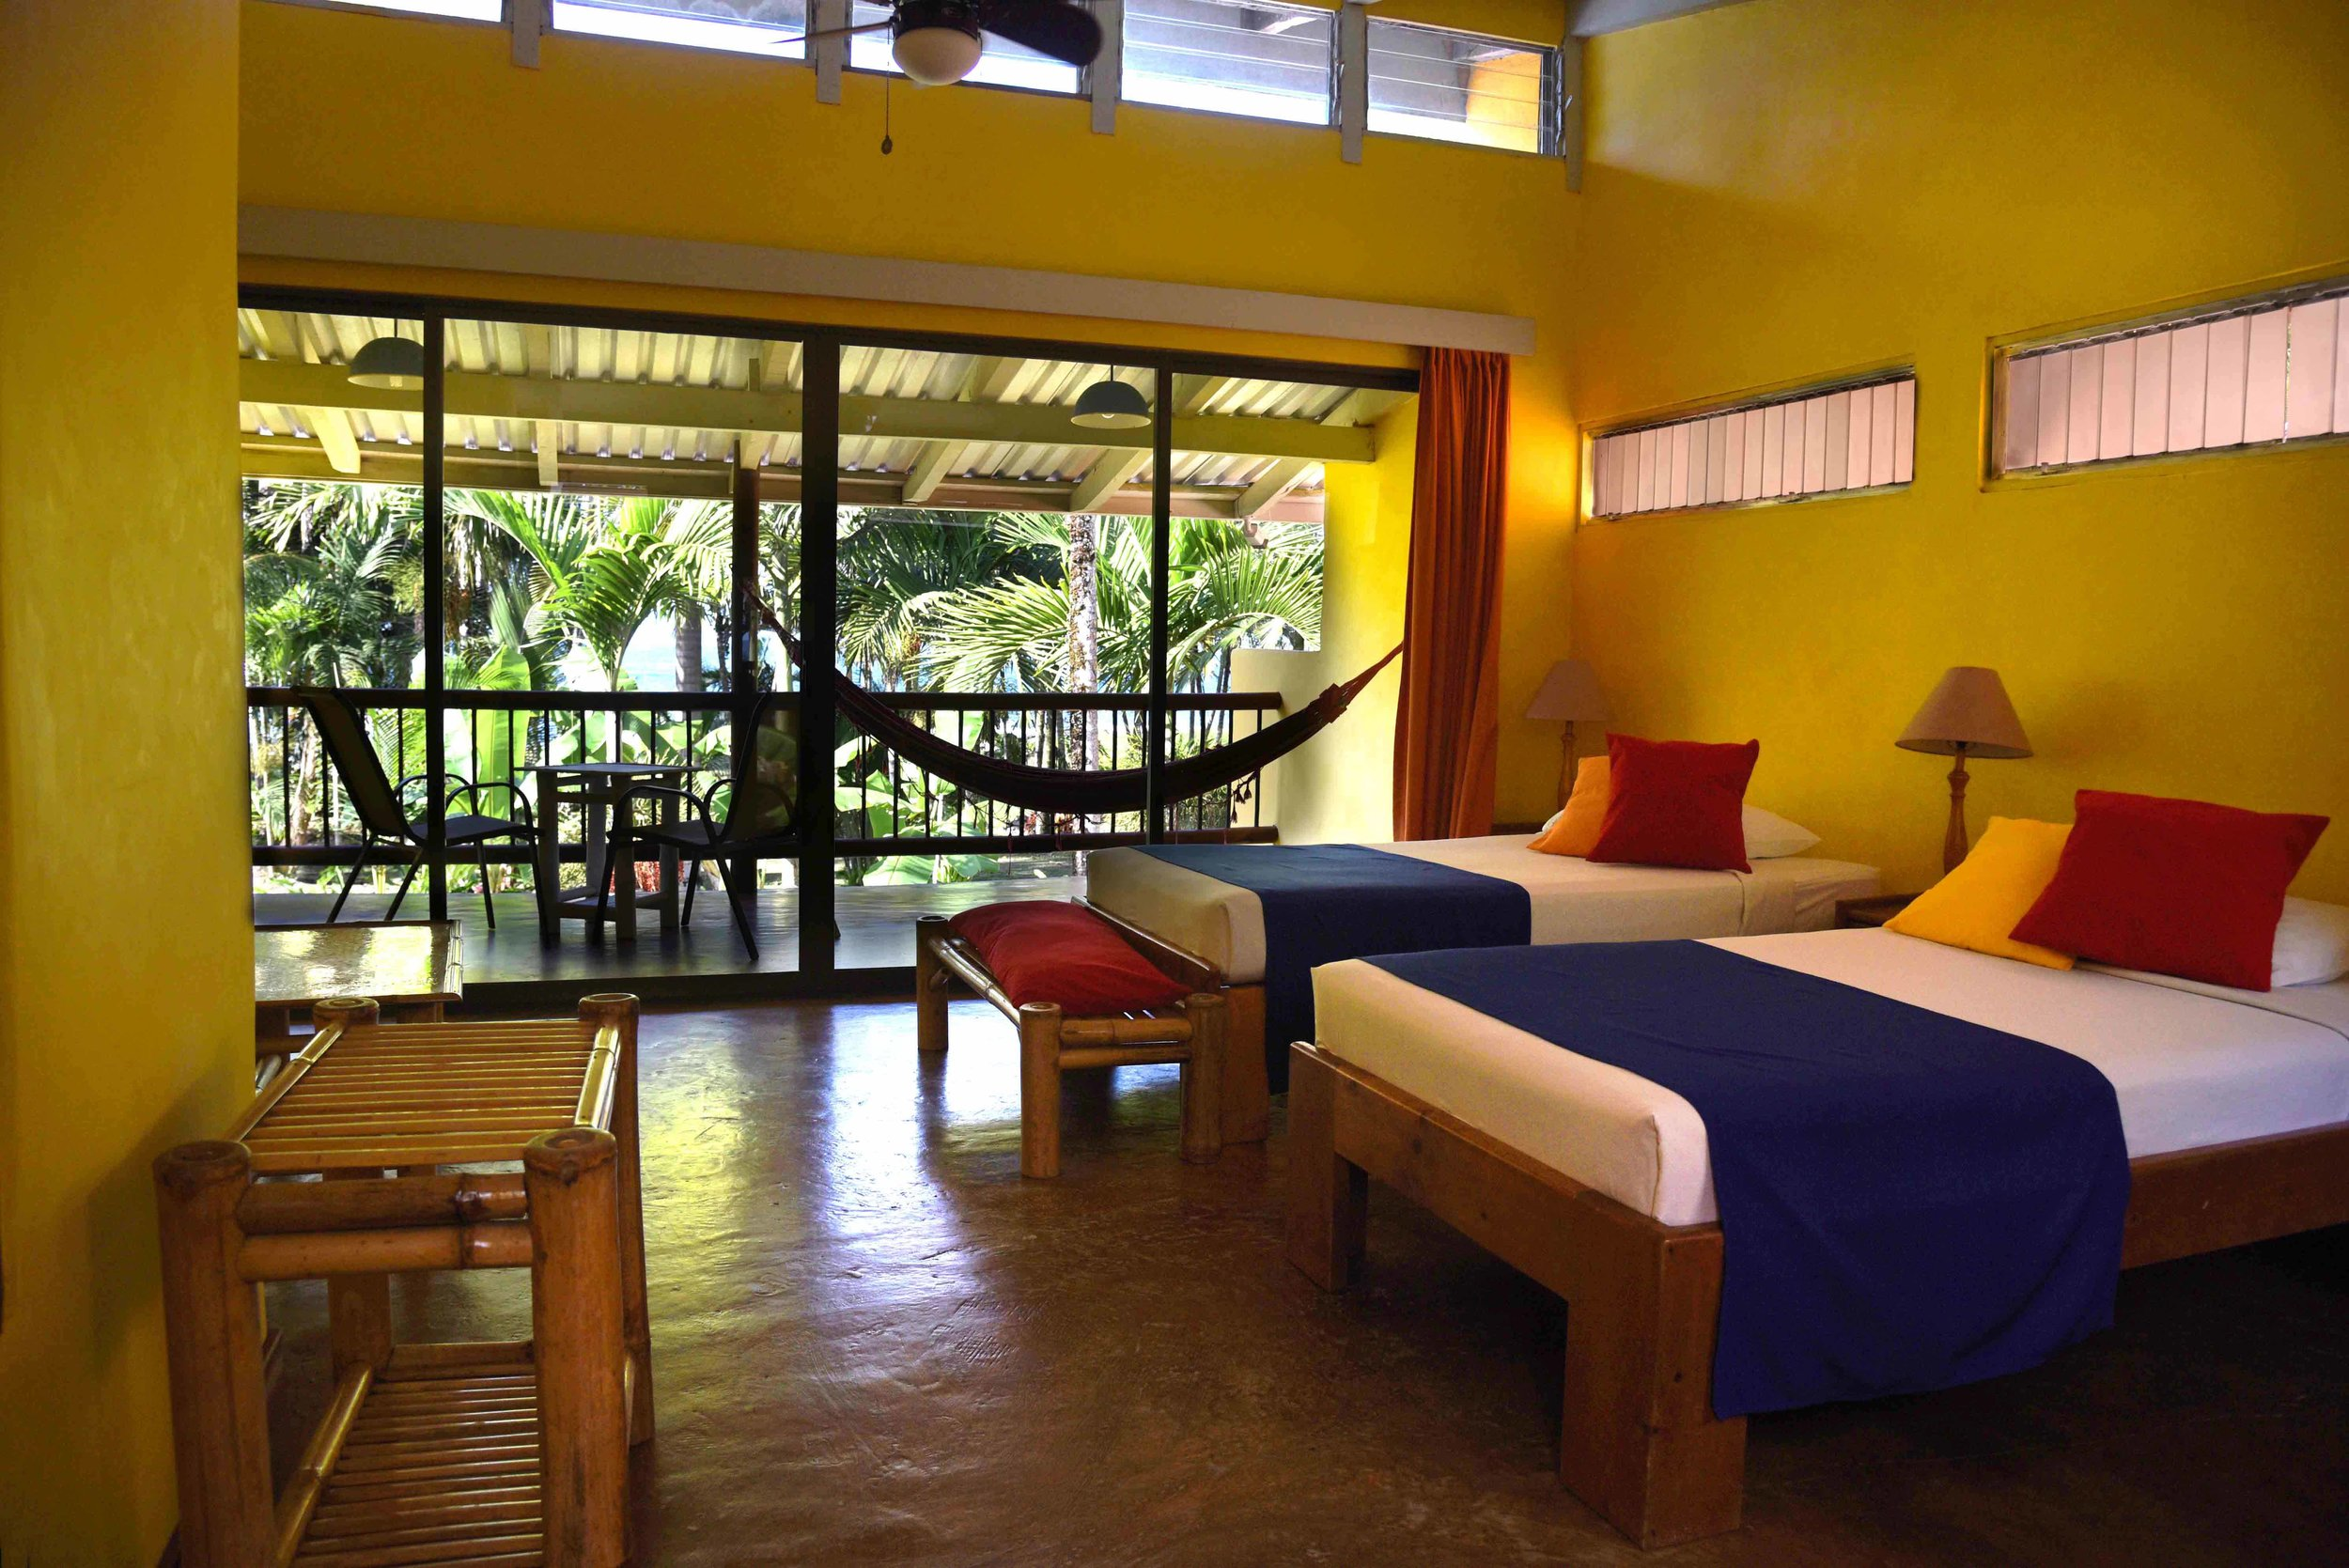 VILLAS DEL CARIBE COCLES PUERTO VIEJO  BREATHWORK YOGA RETREAT  MEG WILLIAMS  LISA D. (C)-9.jpg